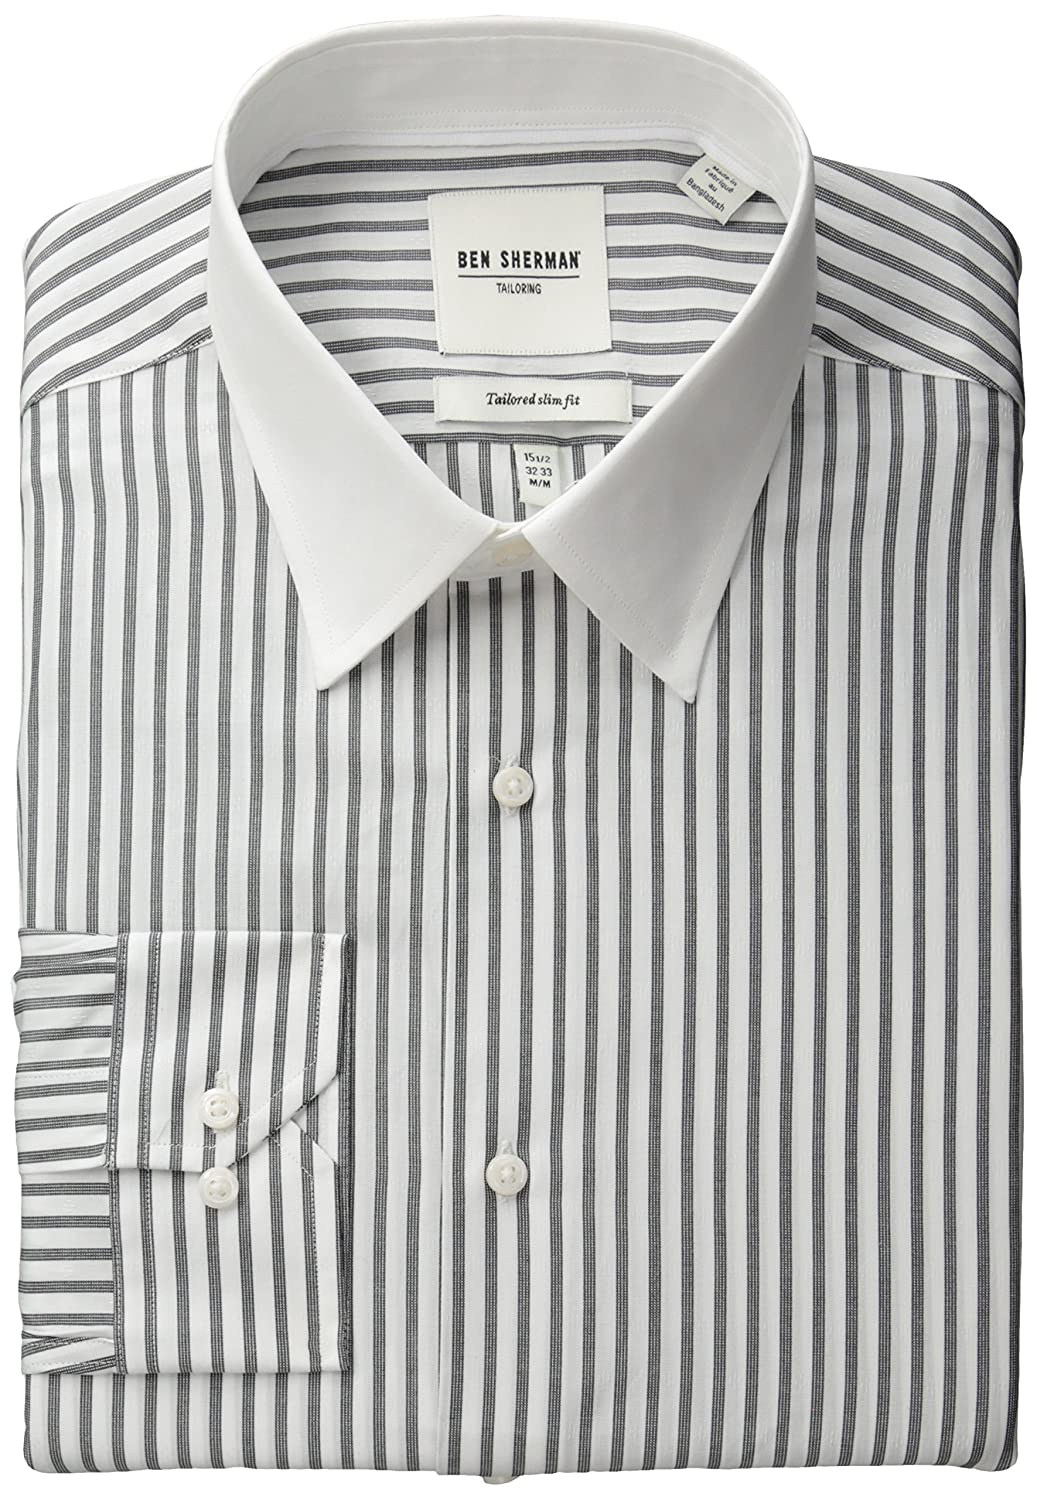 Men's Vintage Workwear – 1920s, 1930s, 1940s, 1950s Ben Sherman Mens Slim Fit Dobby Stripe Bankers Collar Dress Shirt $29.95 AT vintagedancer.com